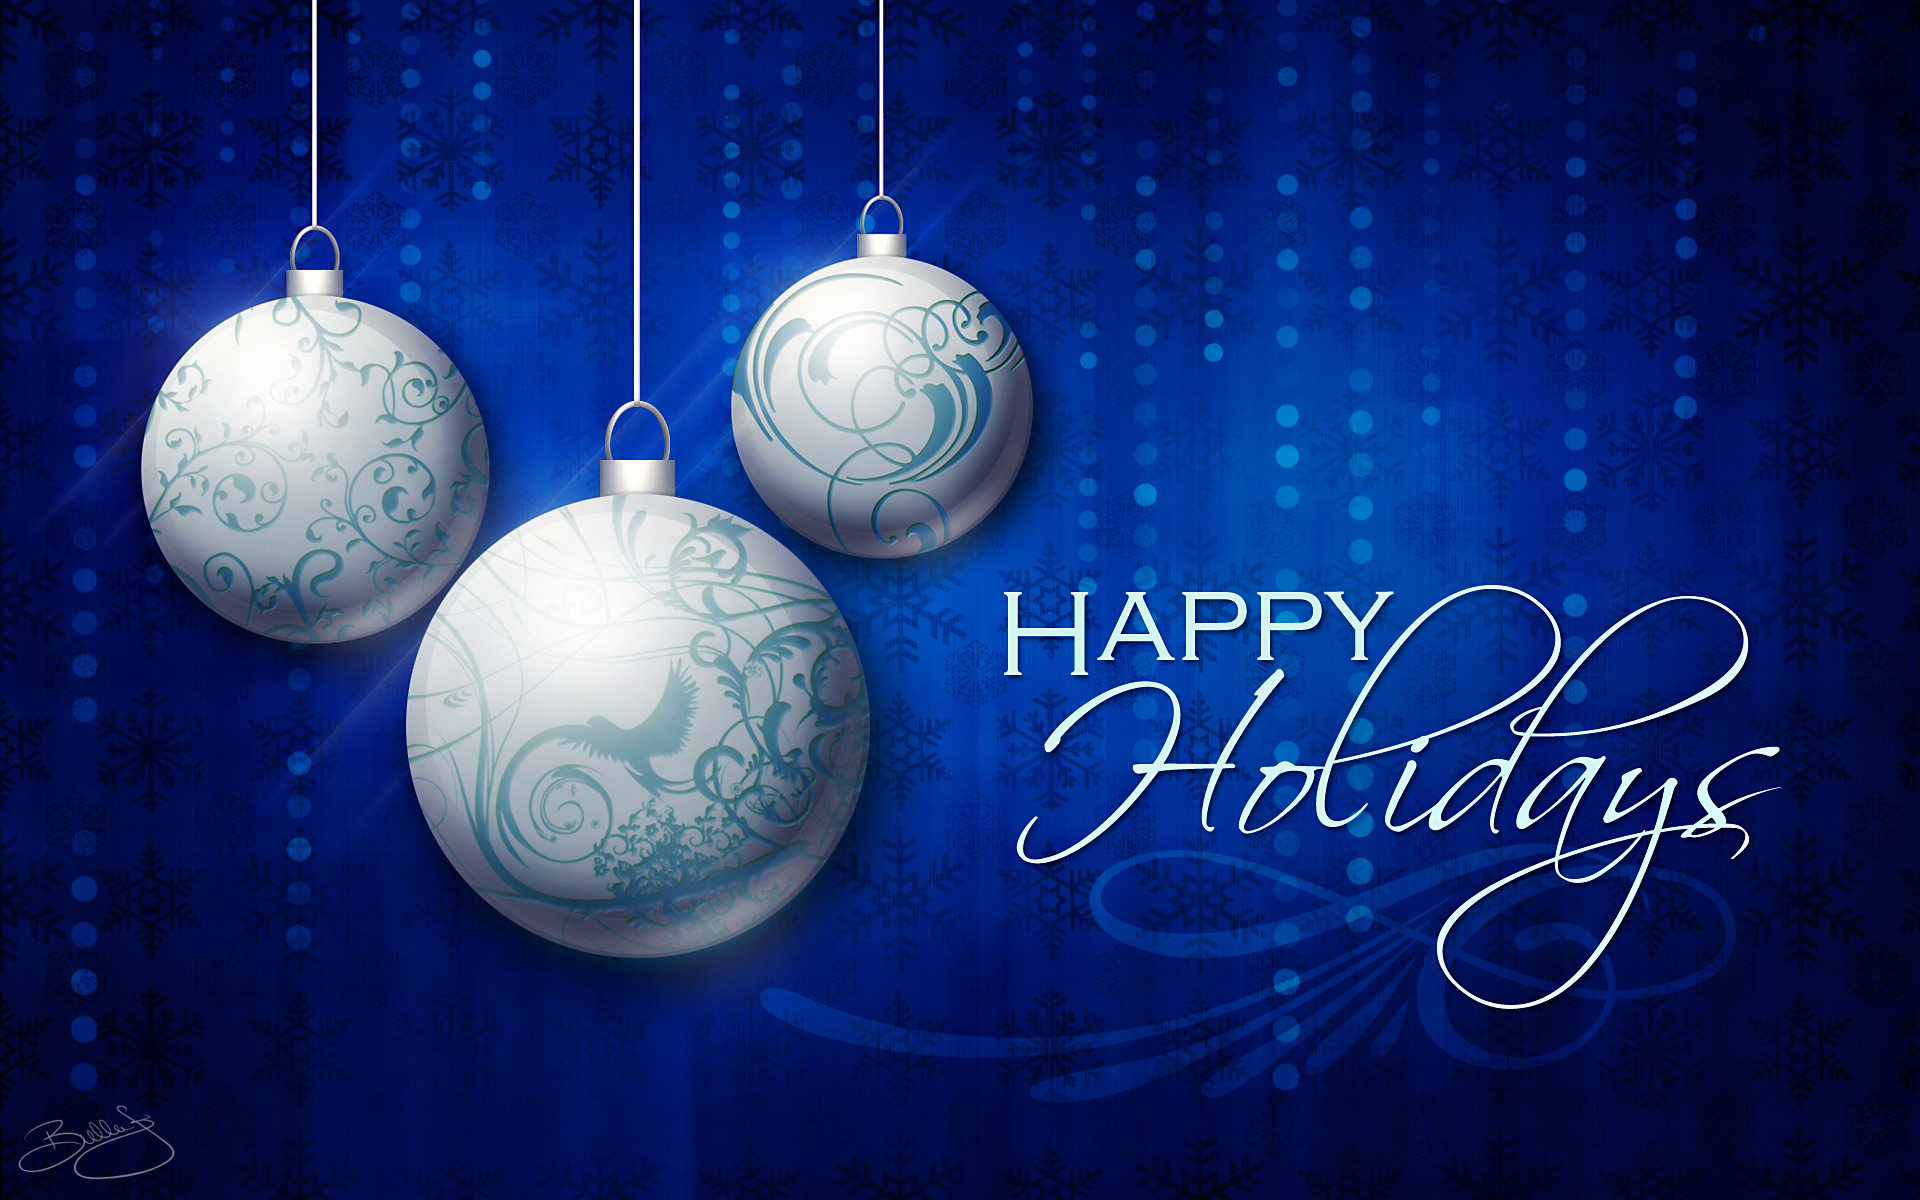 Wishing You and Yours a Happy Holiday Season!